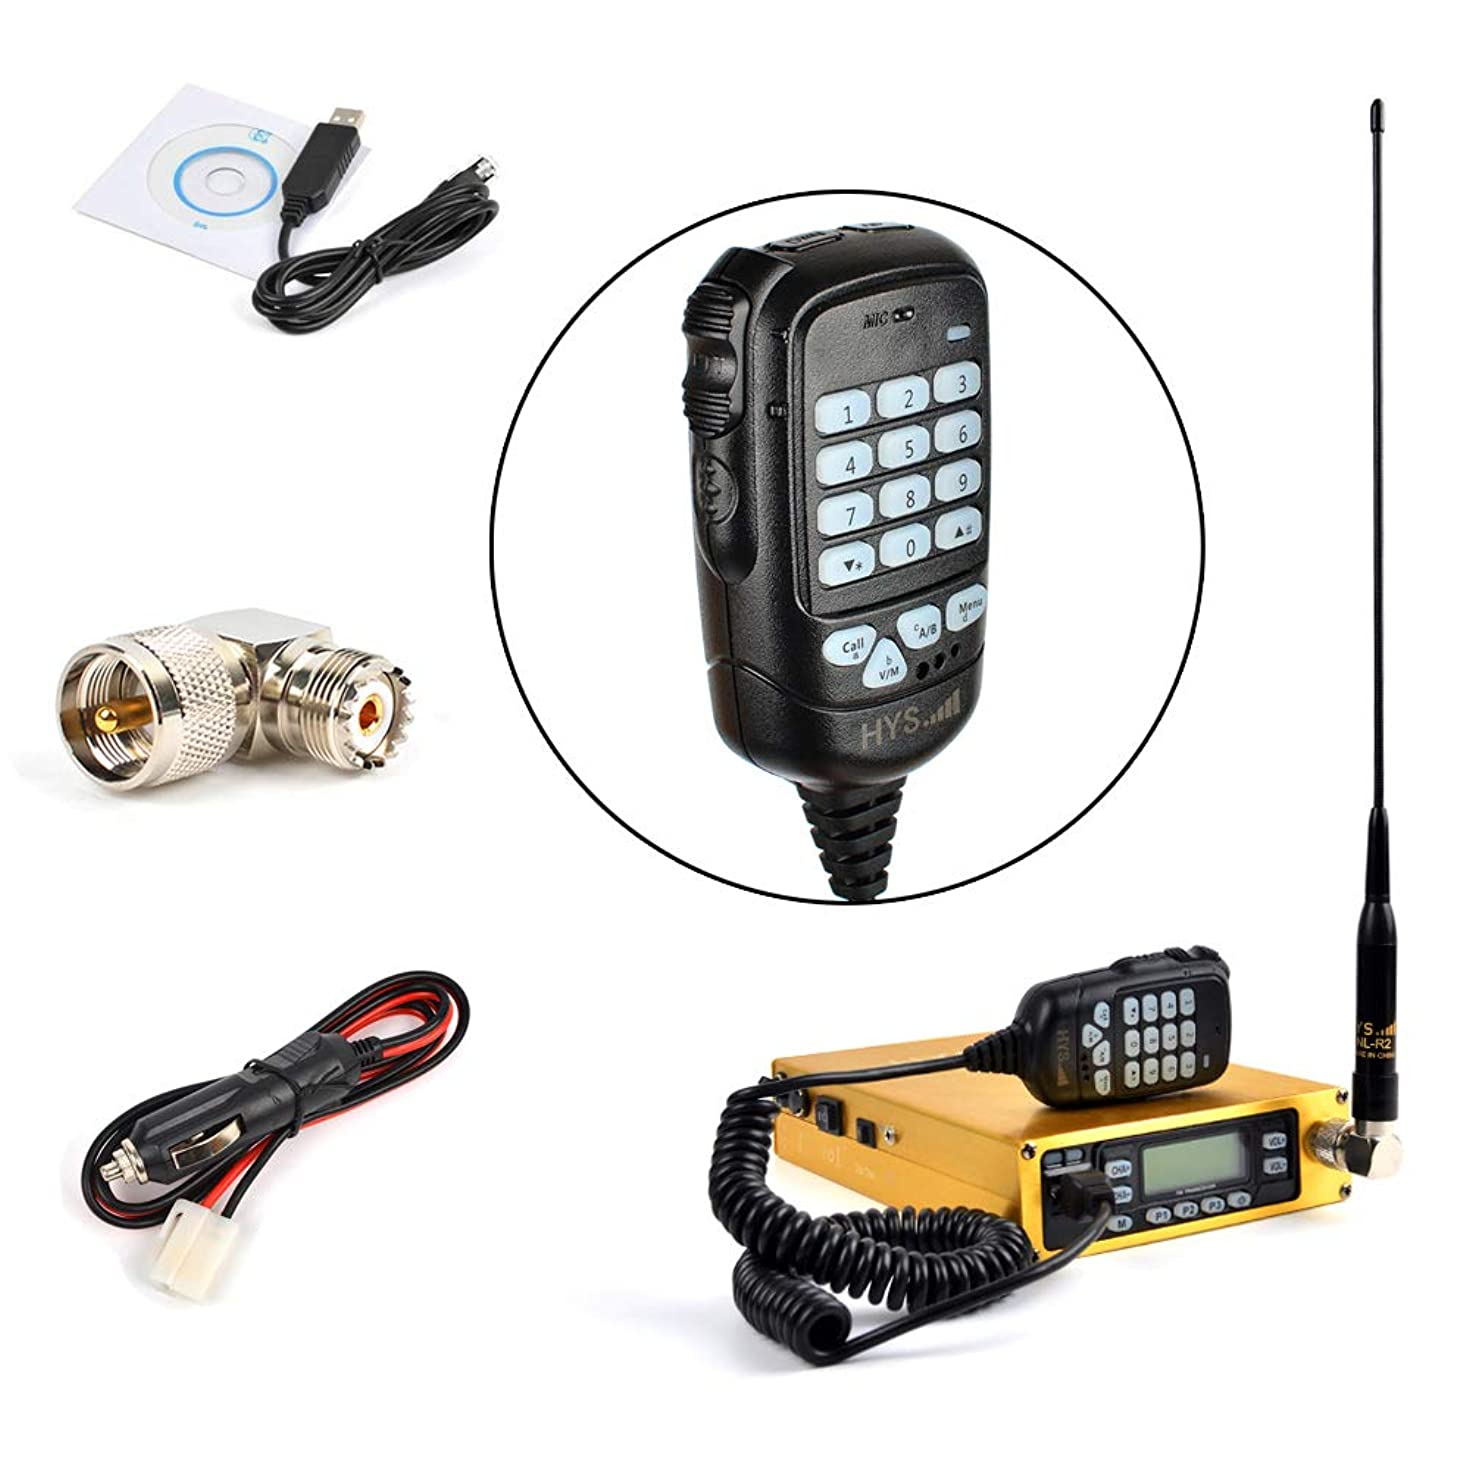 HYS 25W Dual Band VHF/UHF Mobile Transceiver Golden Mobile Ham Radio Amateur Radio Built-in 12000mAh Battery with Programming Cable Antenna SO239 to PL259 Adapter (A Complete Set of)